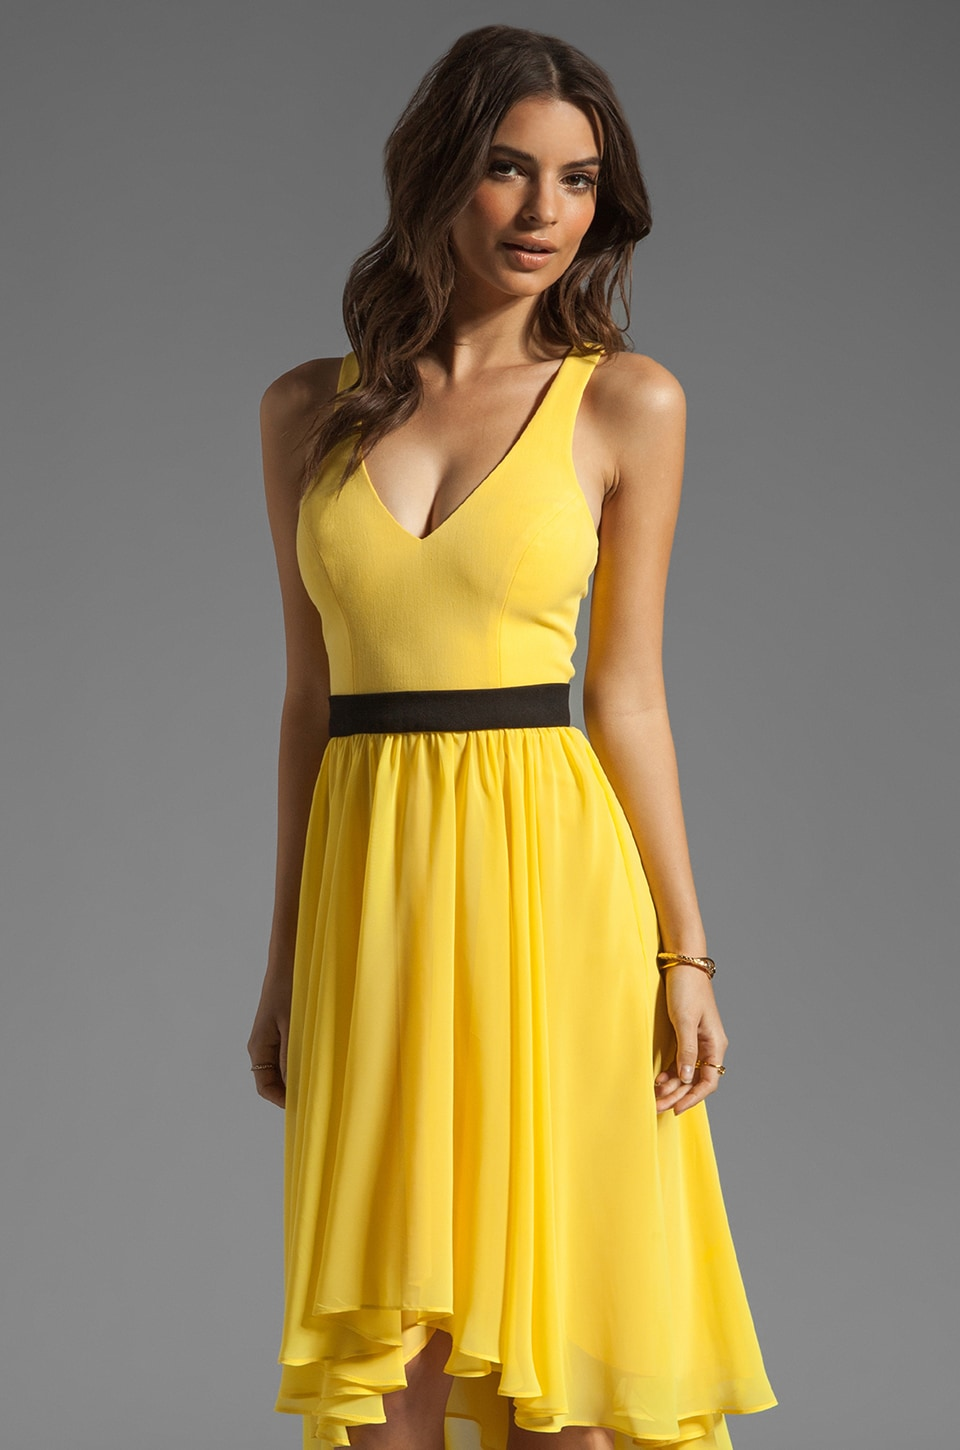 Black Halo Francis Dress in Sunflower and Black